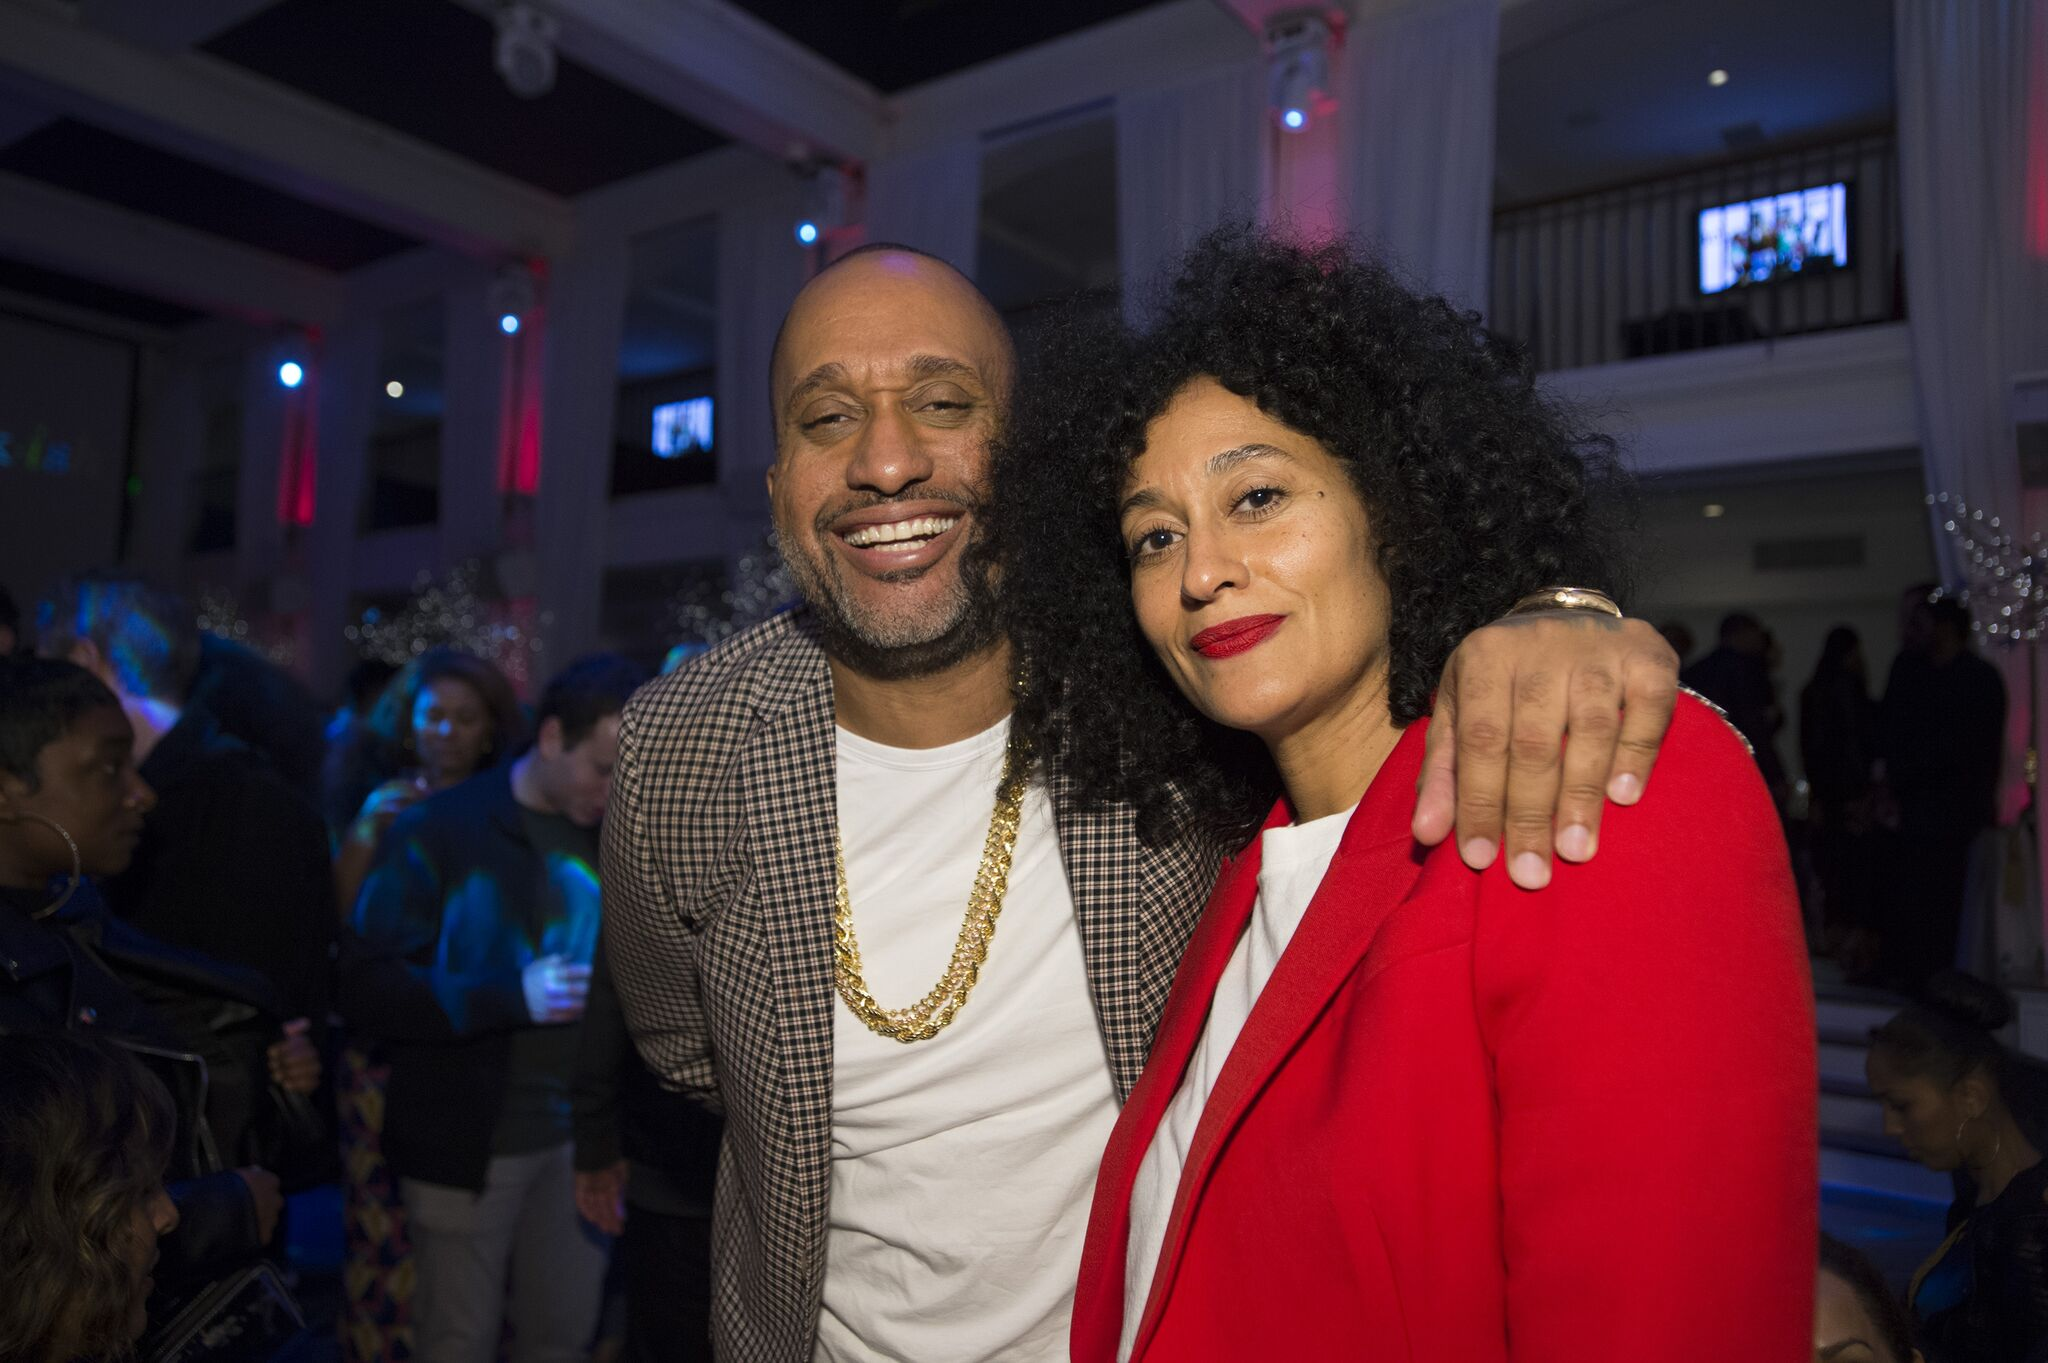 """Kenya Barris and Tracee Ellis Ross at the Season 4 wrap party of """"Black-ish""""  in Los Angeles.   Photo: Getty Images"""